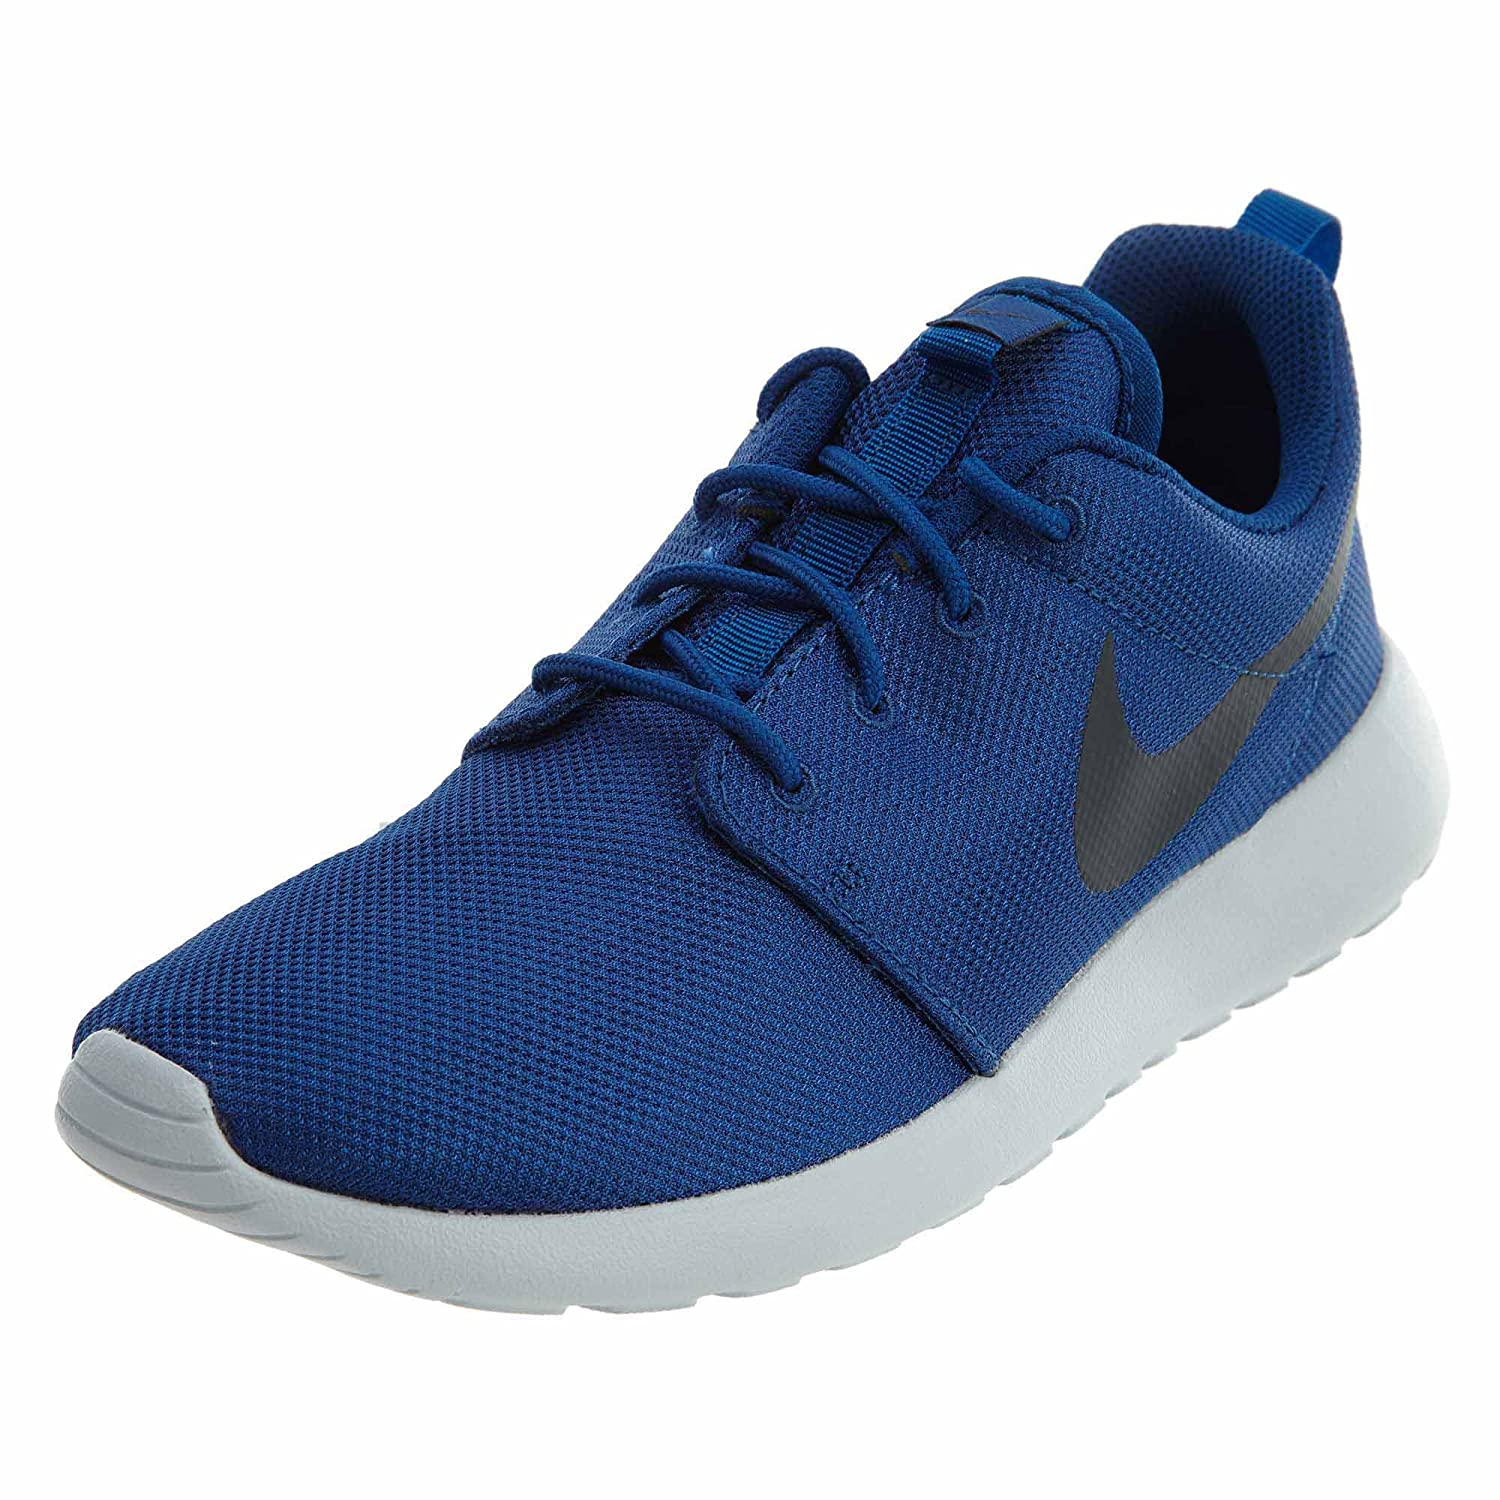 [ナイキ] M819881 NIKE ROSHE ONE RETRO 549733 B077R6TYS4 8 D(M) US Gym Blue/Anthracite